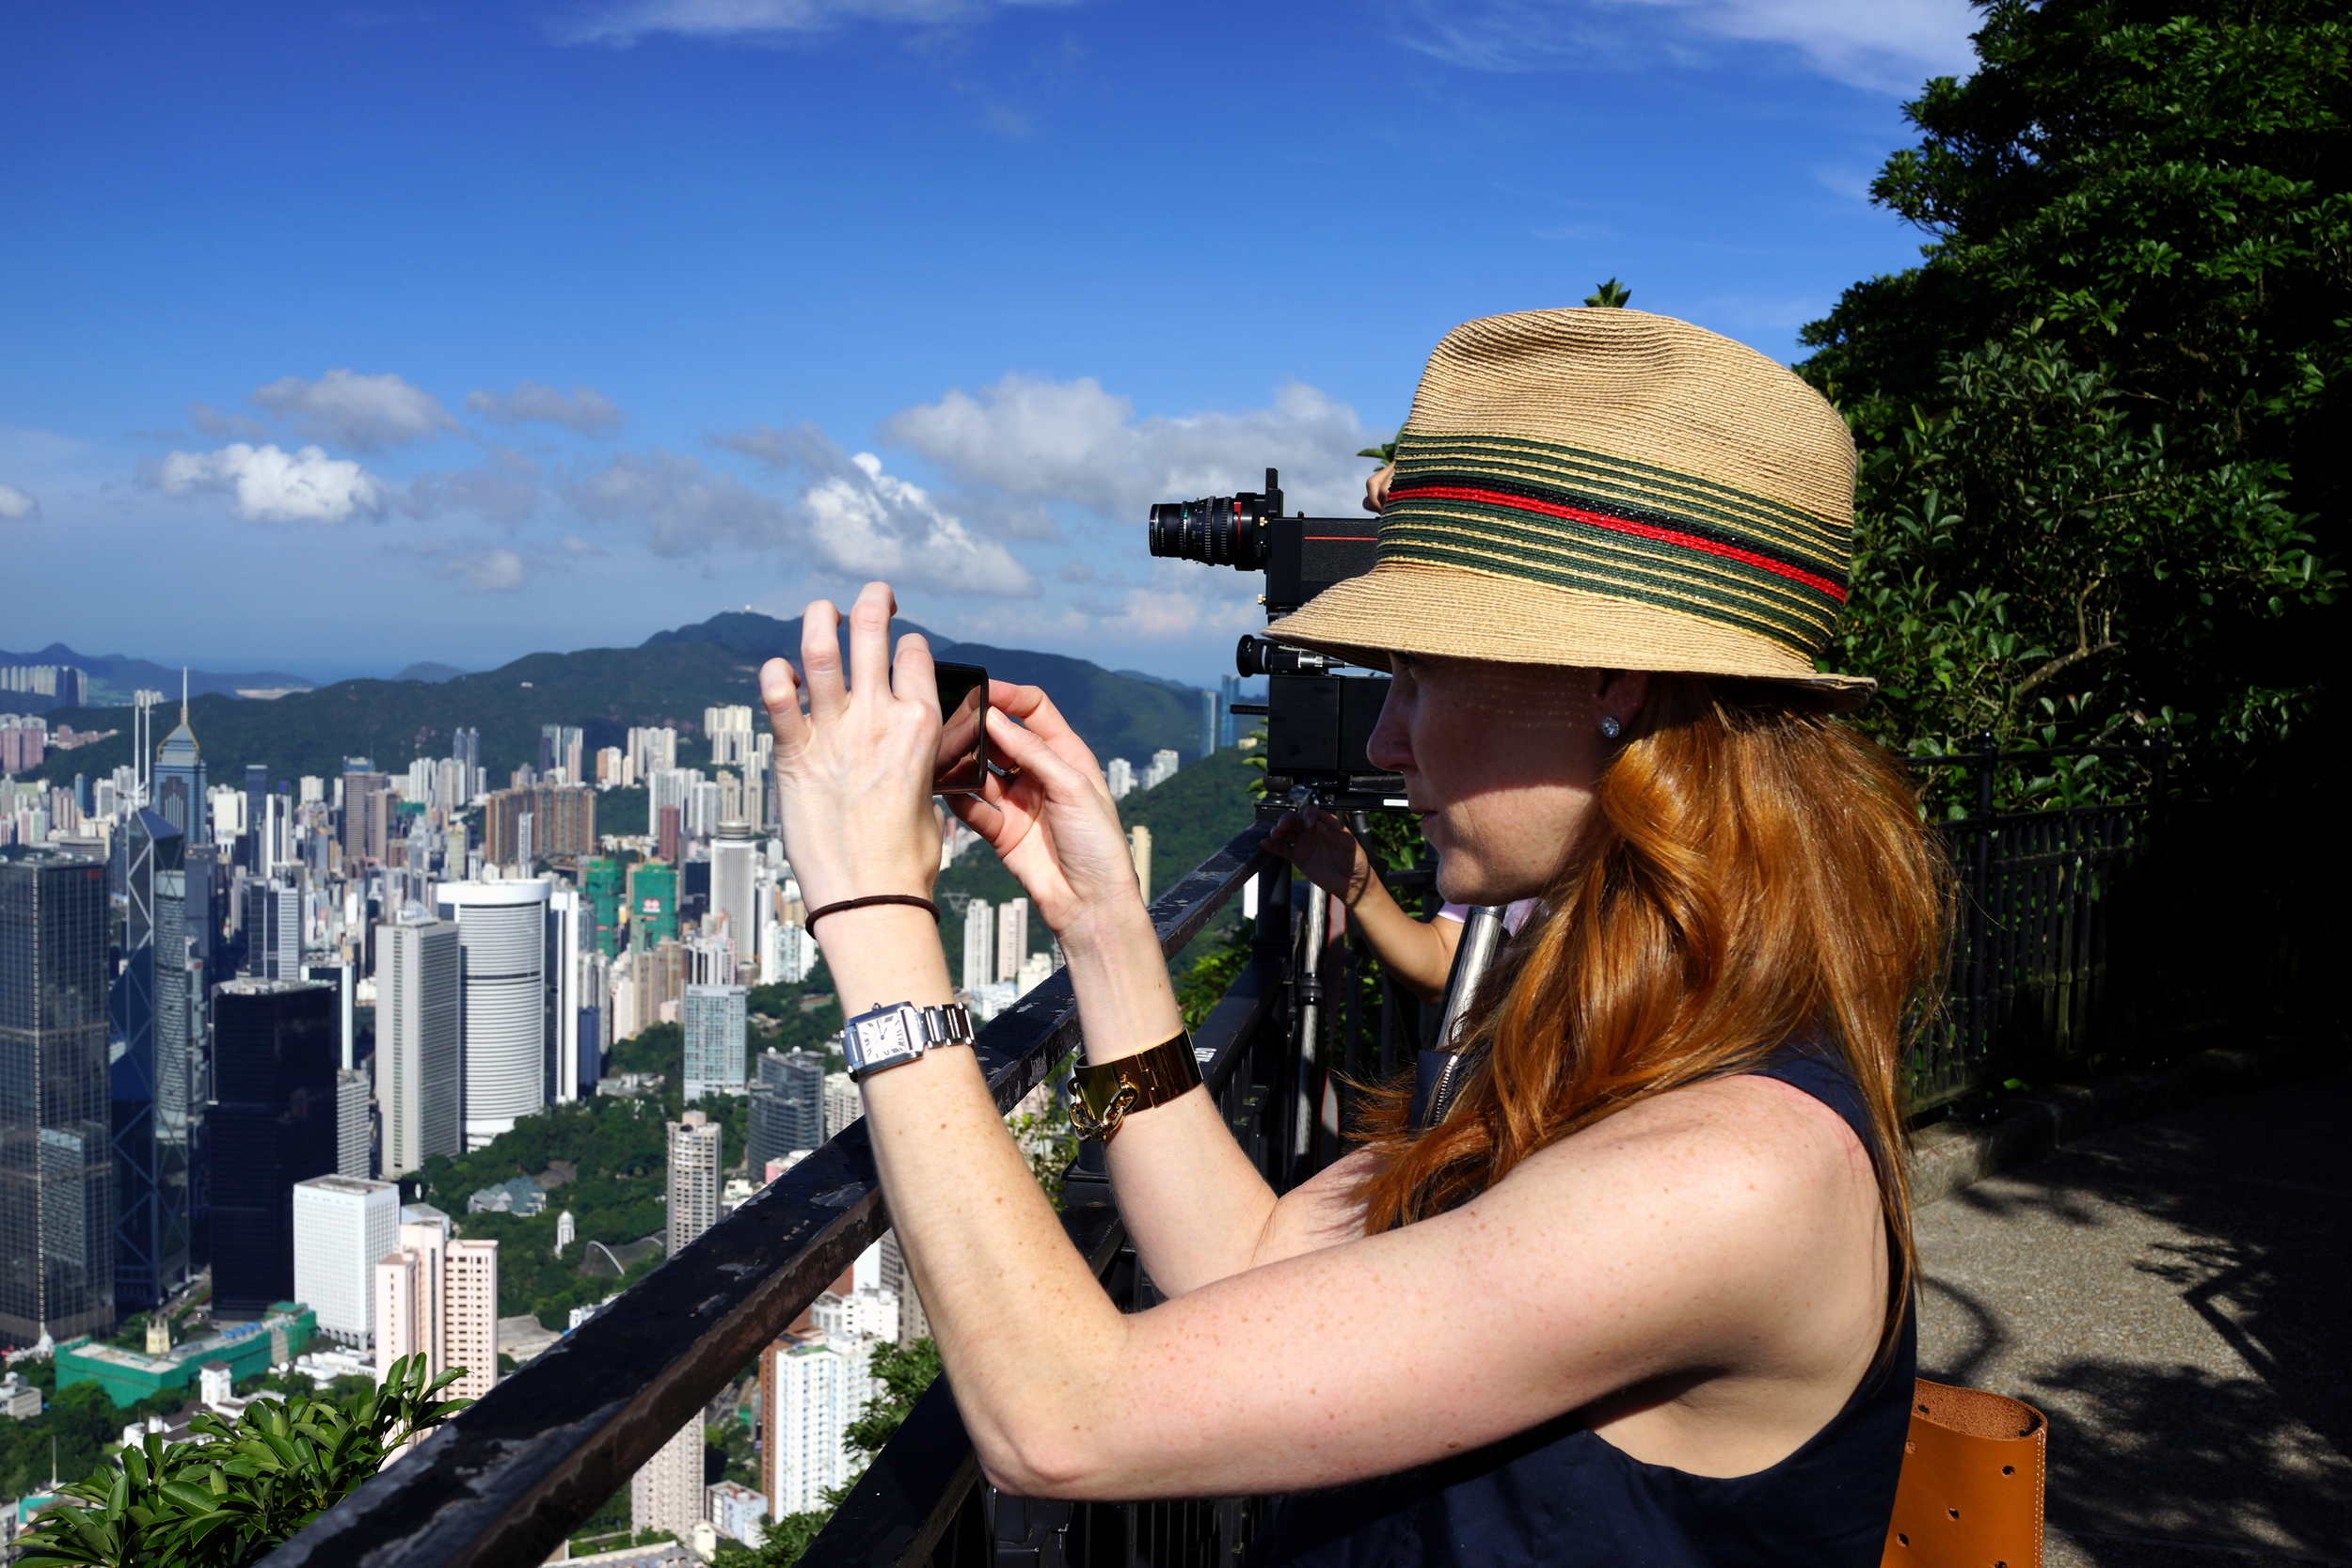 Meet Lindsey, Lindsey is an Interior Designer from New York and she was thrilled with the crystal clear view from the Peak